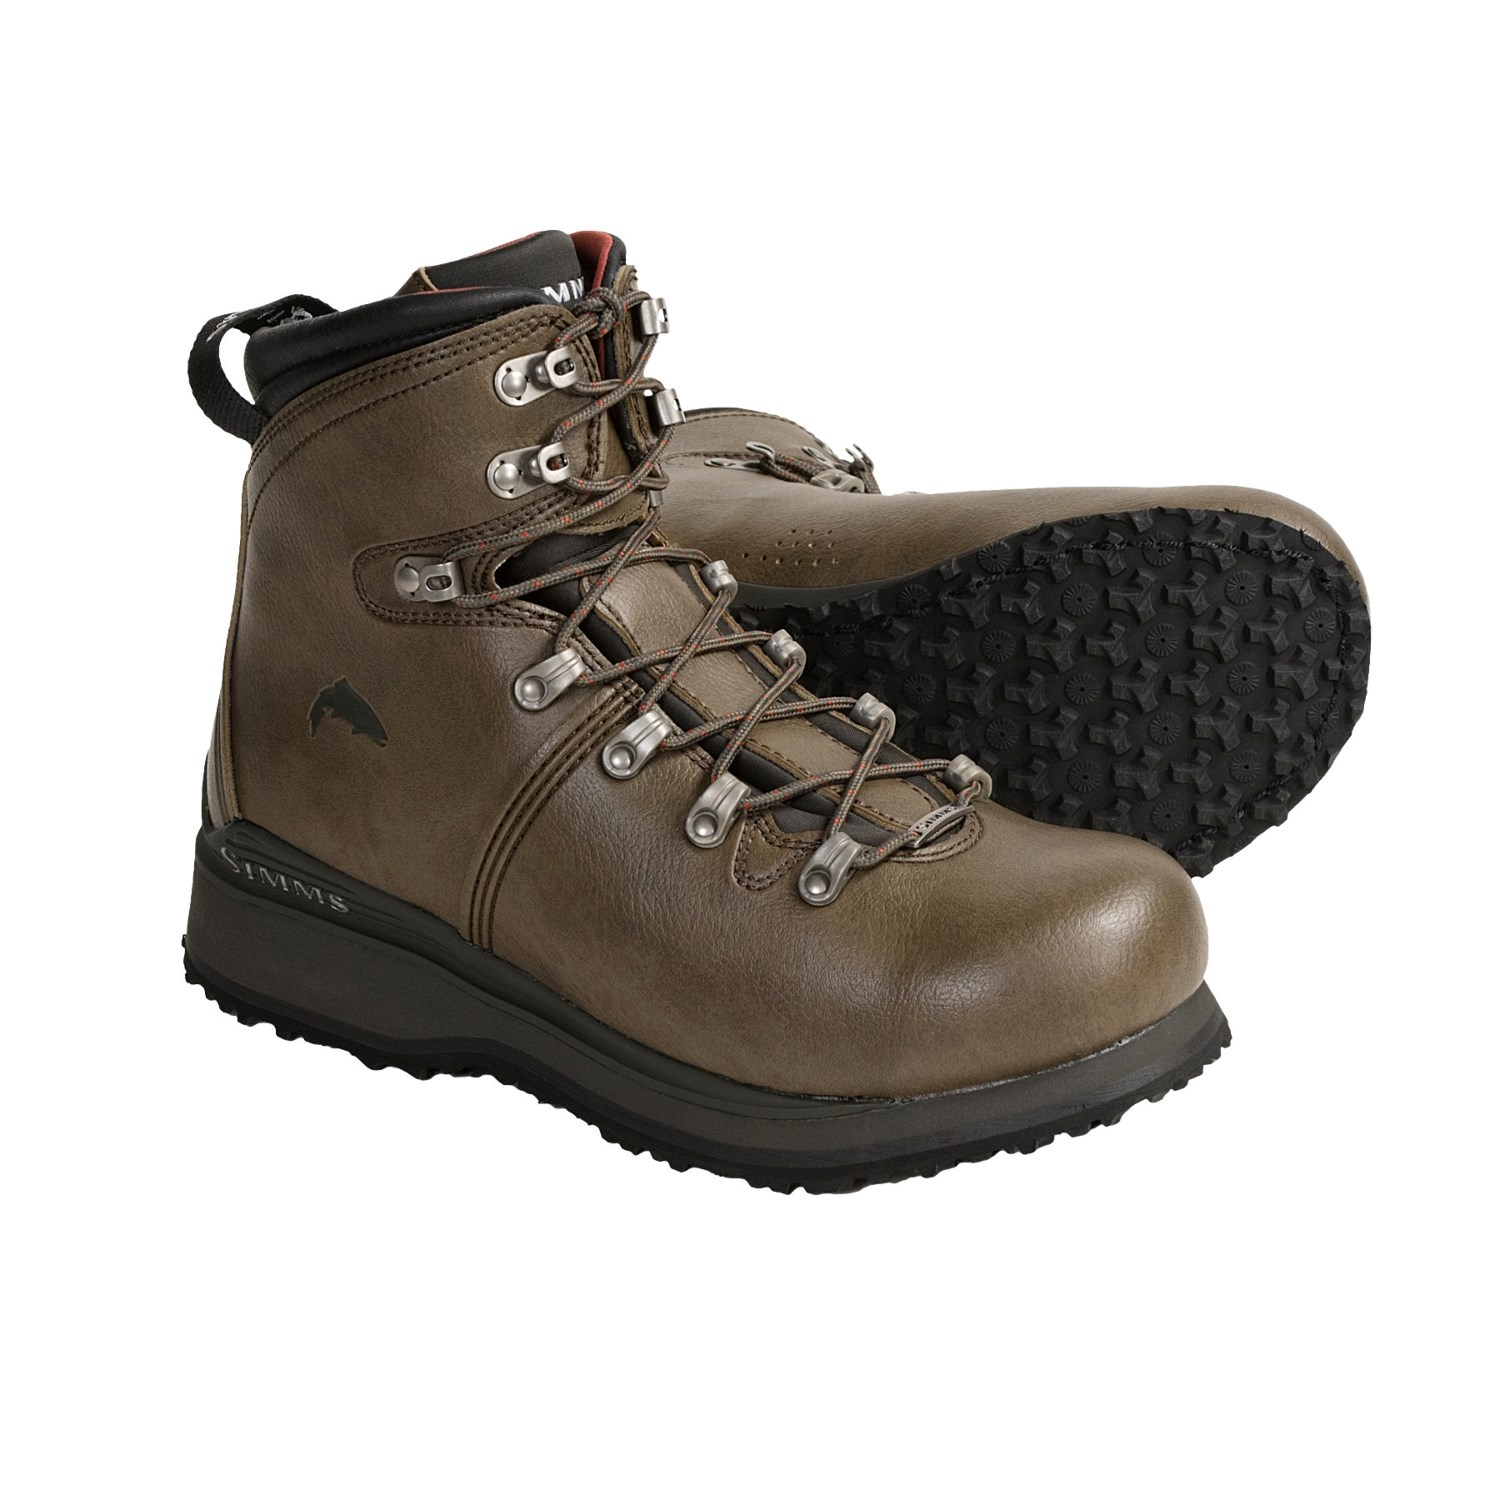 Simms Freestone Wading Boots For Men 3588x Save 30